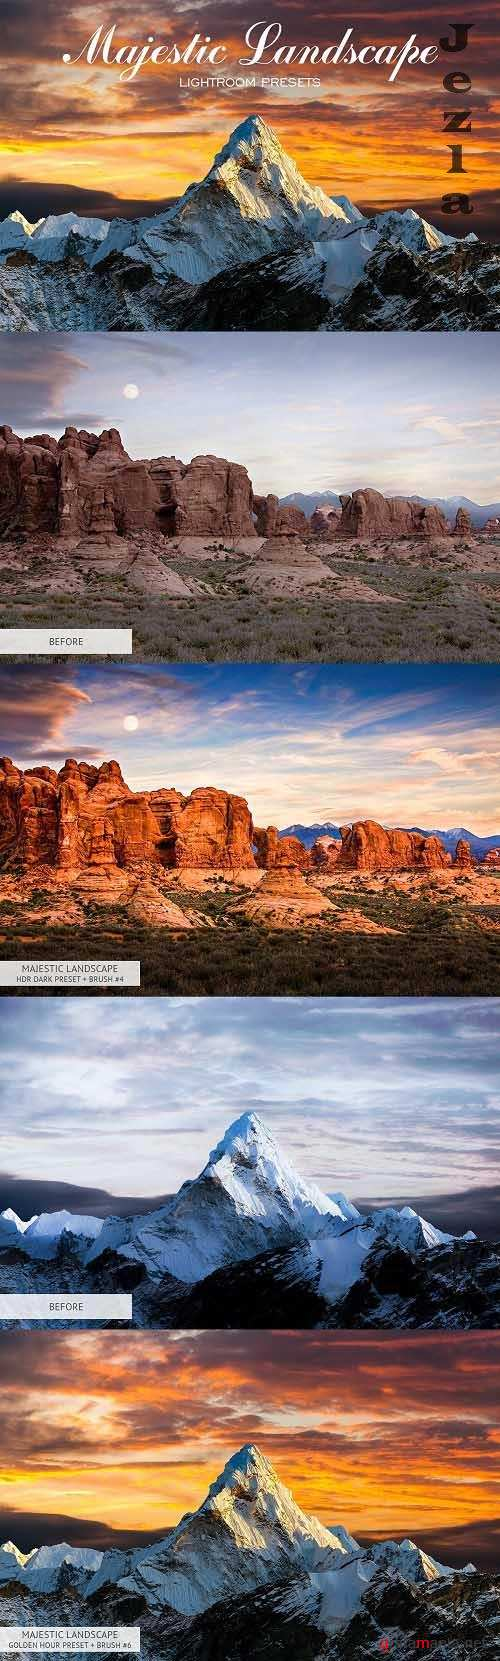 Majestic Landscape Lightroom Presets - 3416059